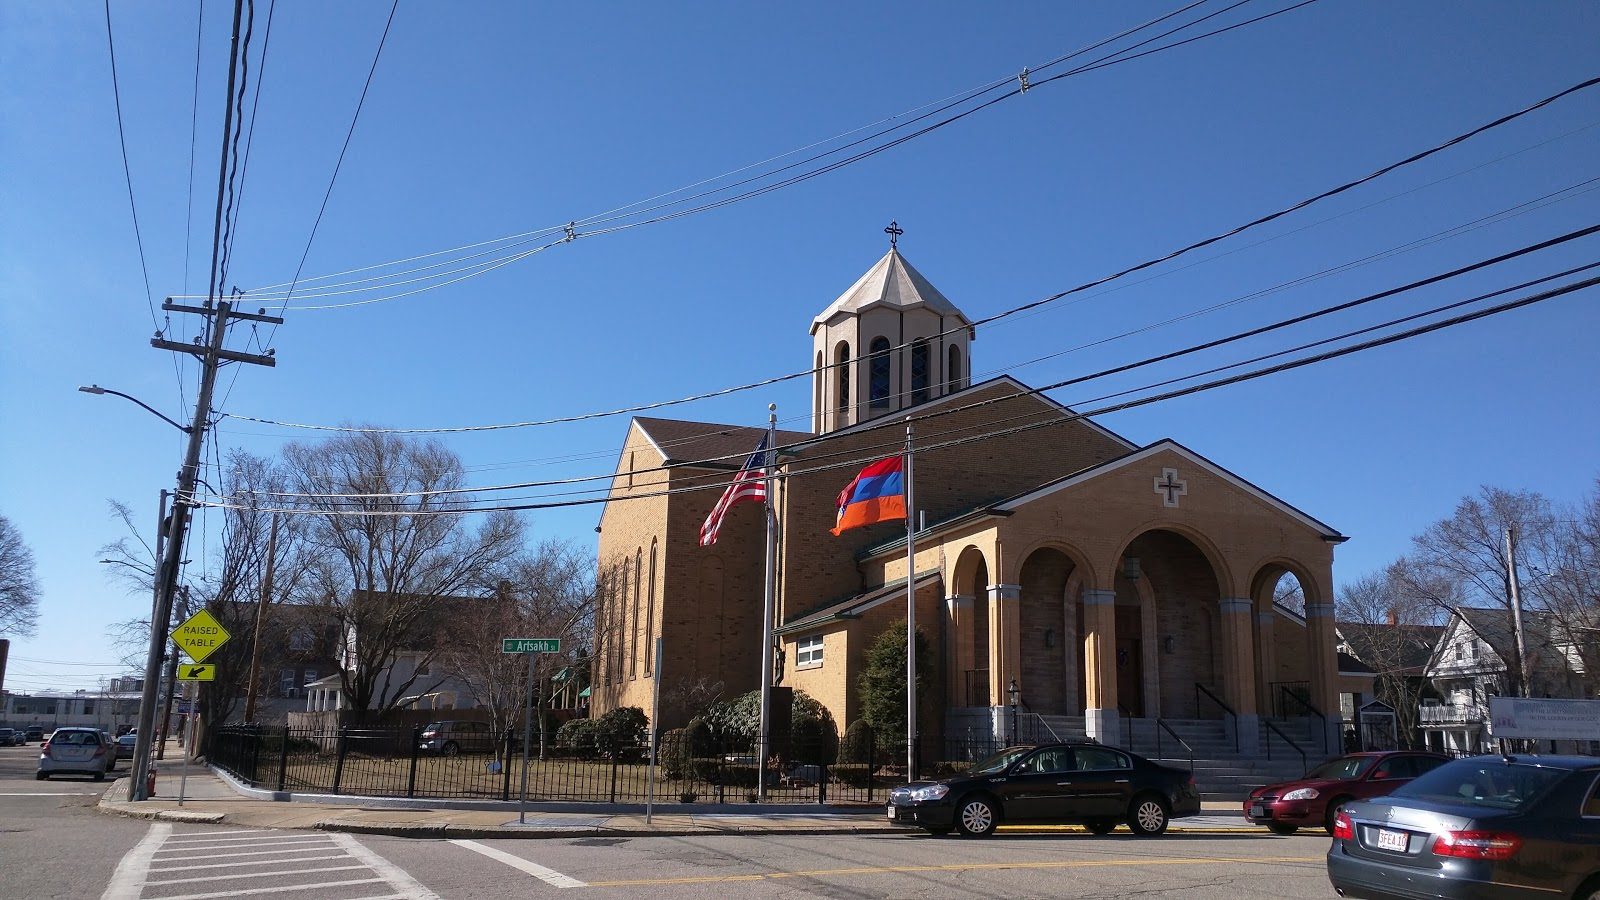 An Armenian Community Excursion: the Mysterious Oriental Church, and Authentic Gourmet